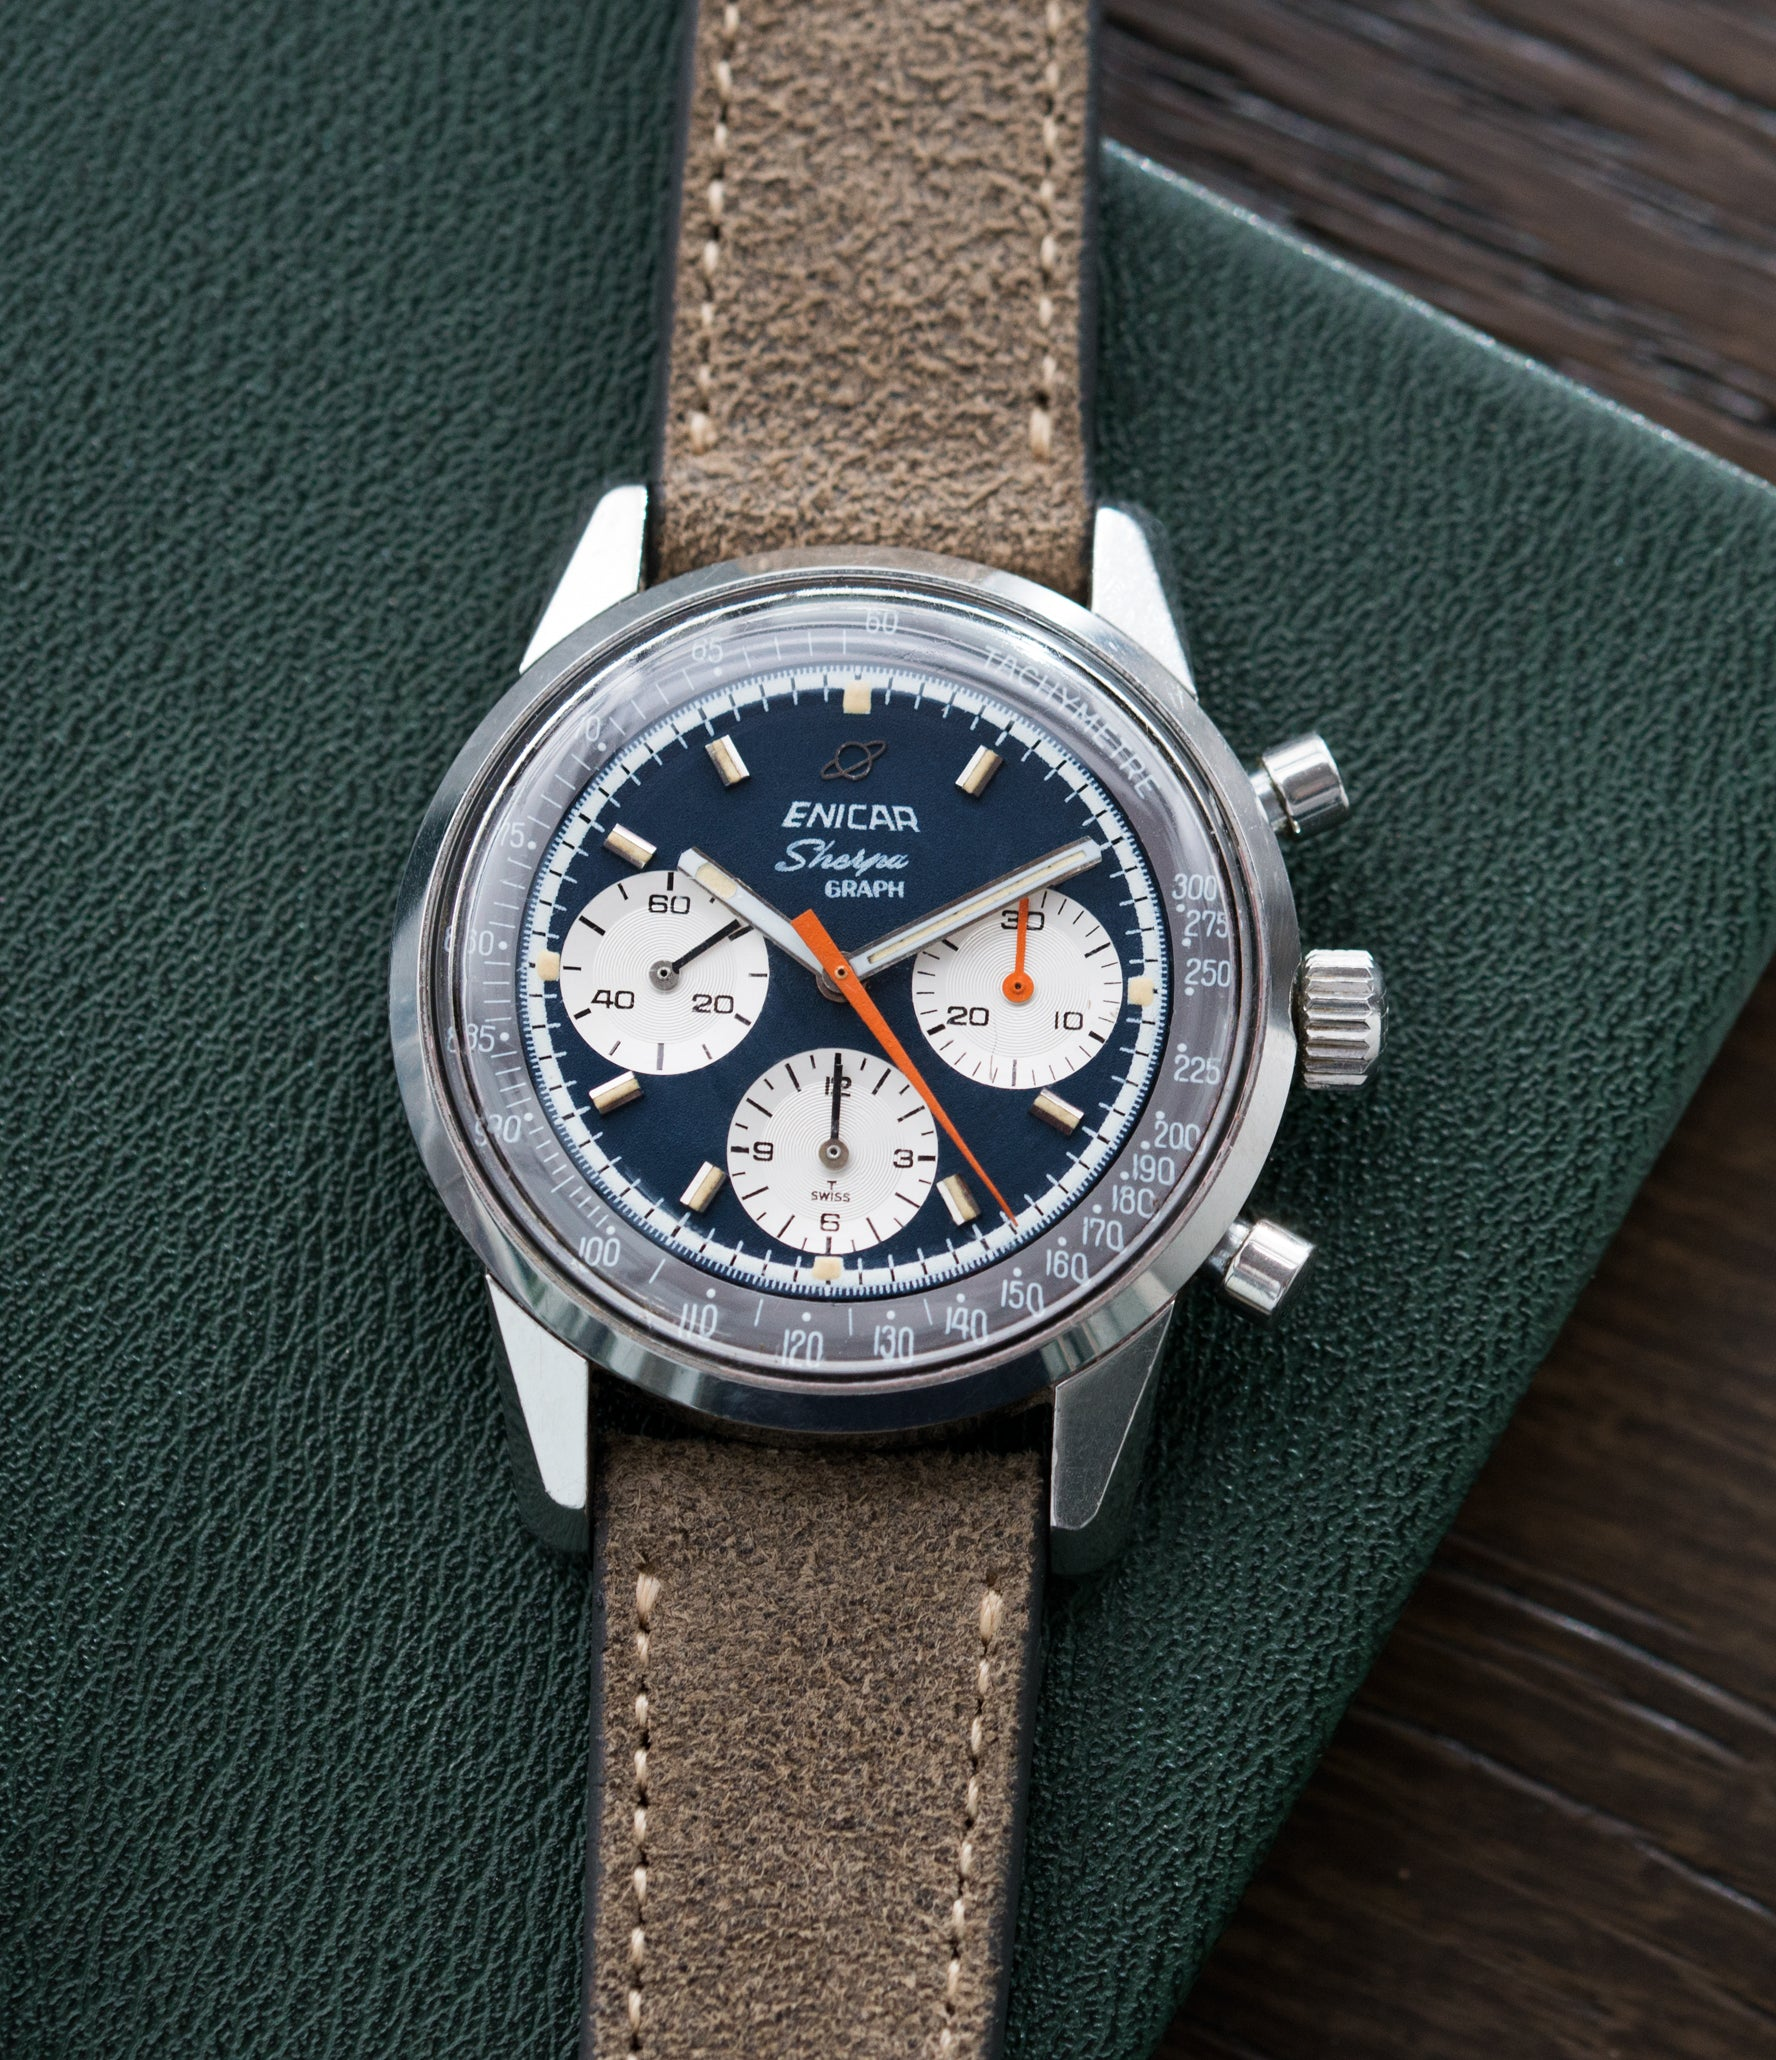 speedmaster s should omega you this in at inline vintage stories style today a apollo why limited lot catawiki edition moonwatch scott watch professional xv men image an popular was watches story worden invest